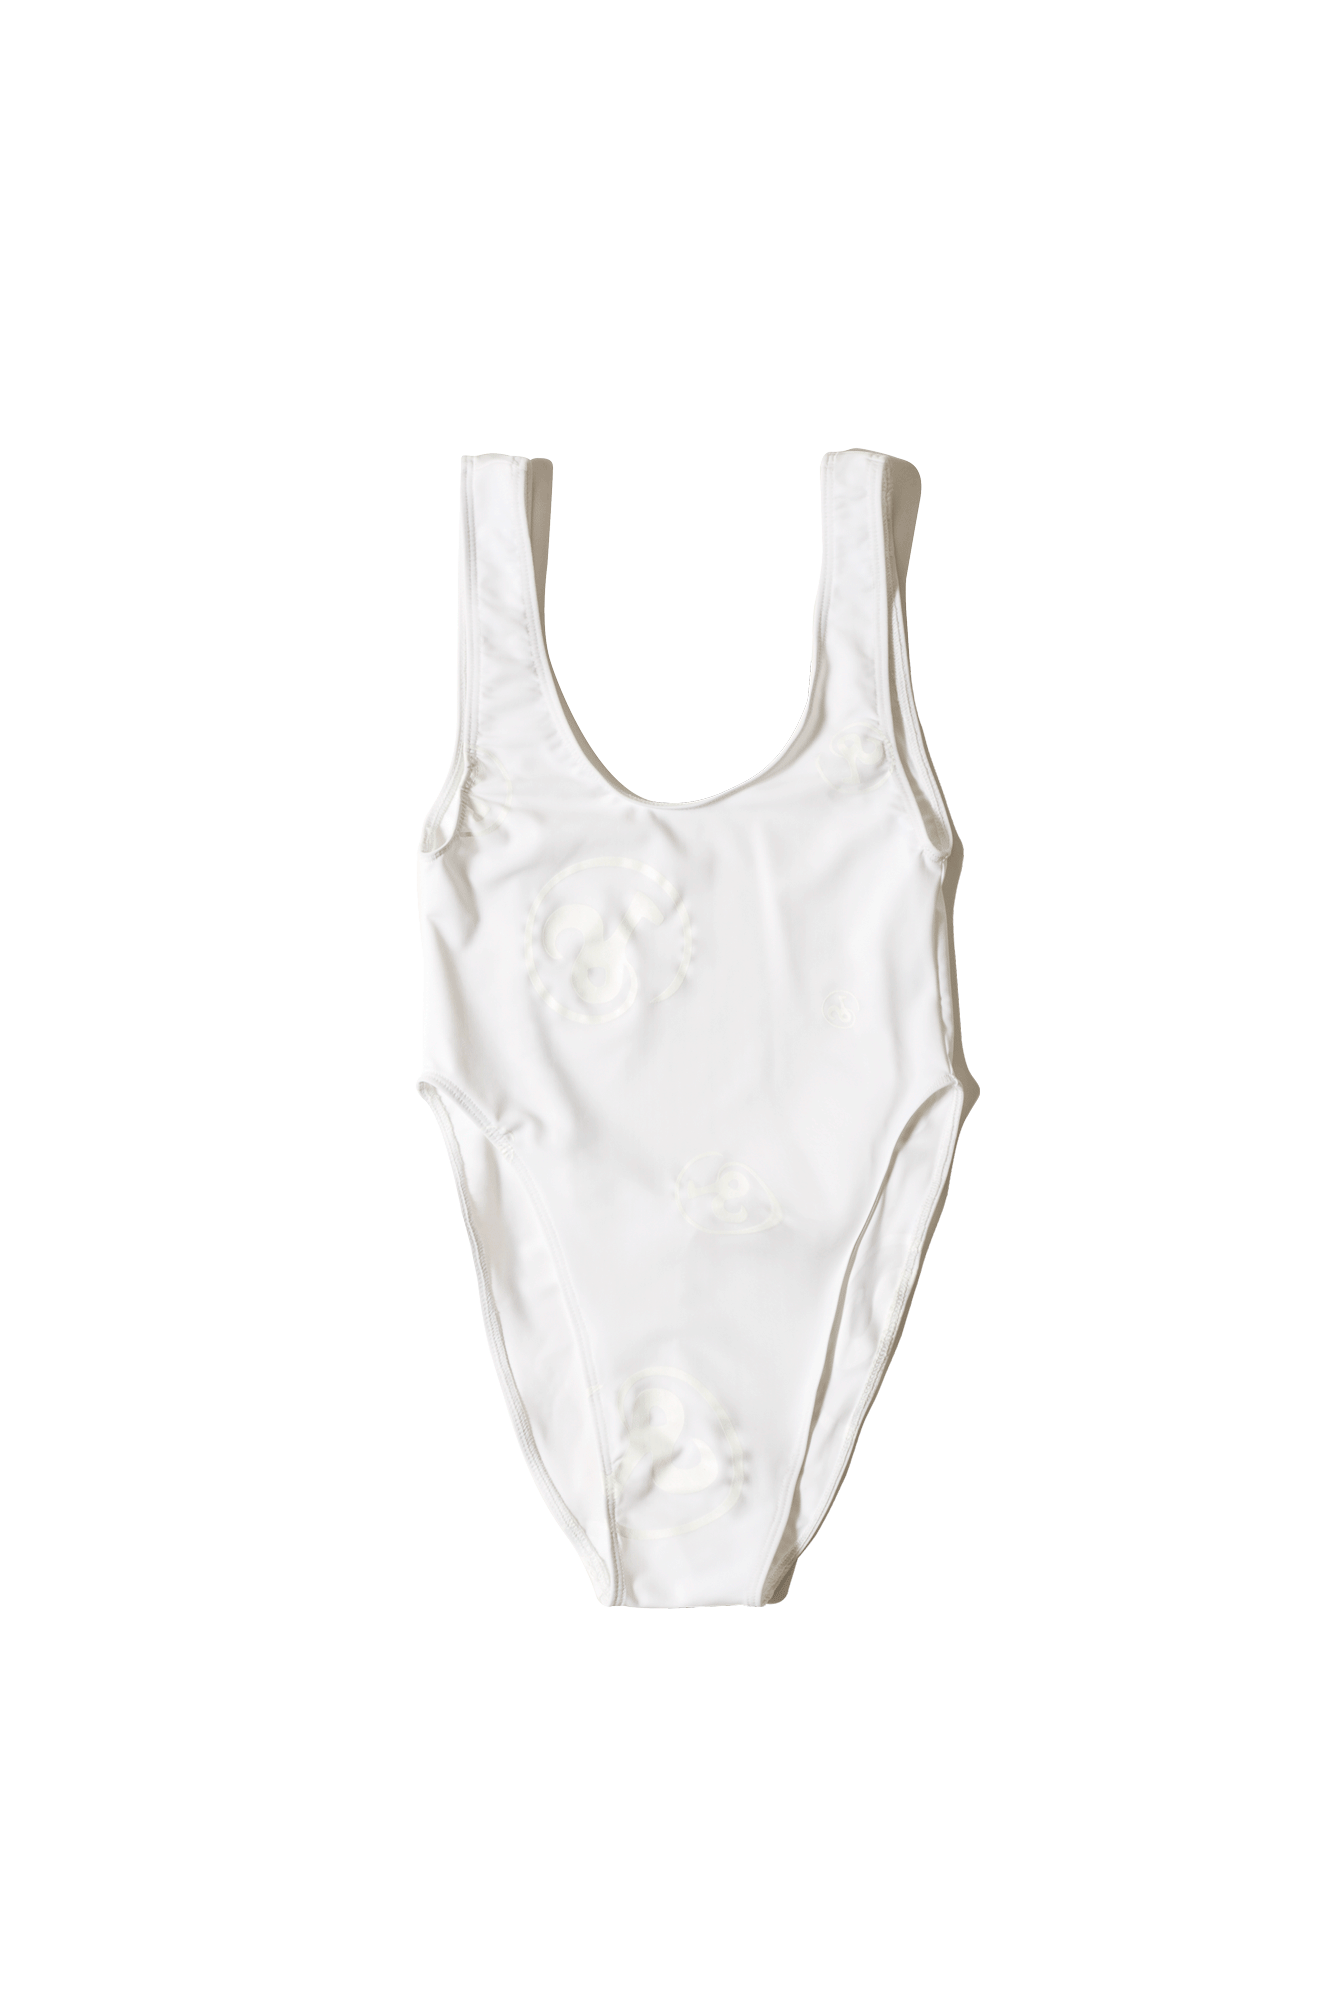 Richardson Mag Beachwear One Piece Swimsuit White 6211120000#000#WHITE#S - One Block Down